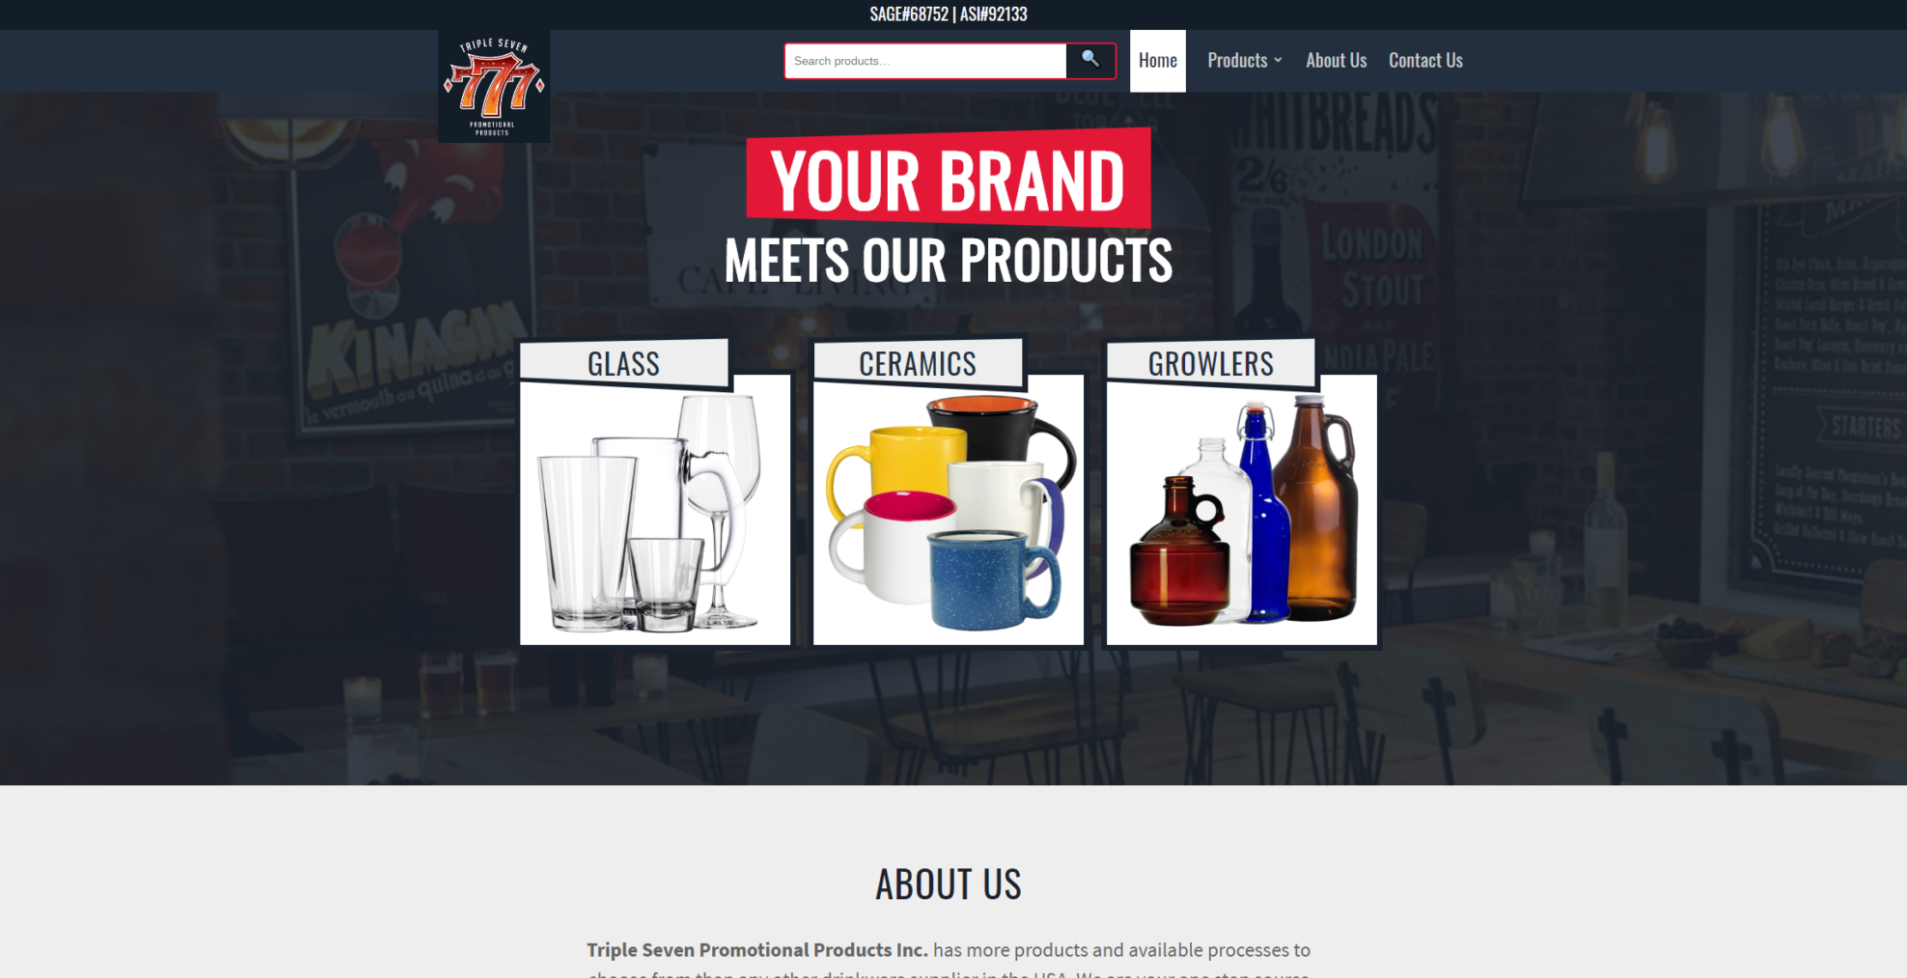 777 Promotional Products website designed by 702 Pros